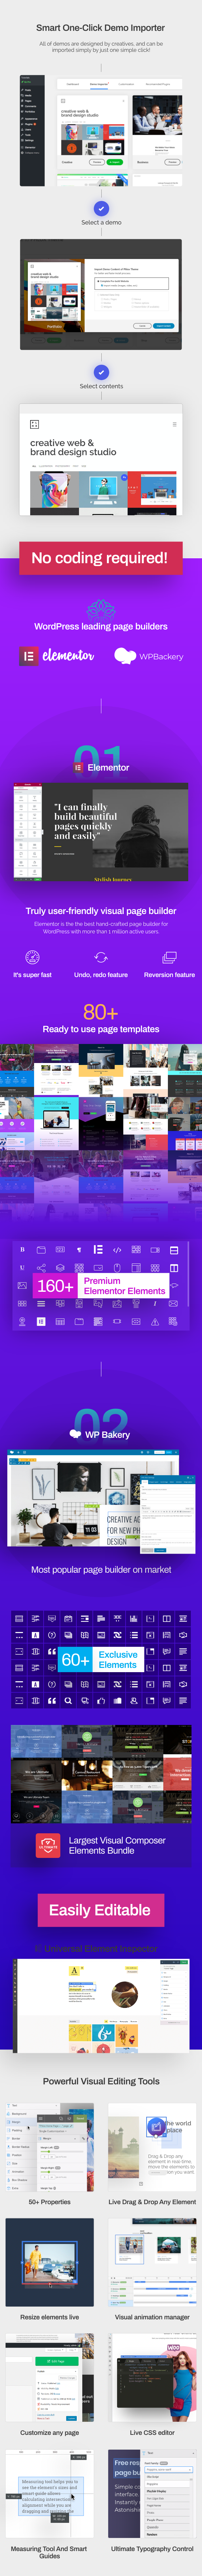 Phlox Pro - Elementor MultiPurpose WordPress Theme - 4